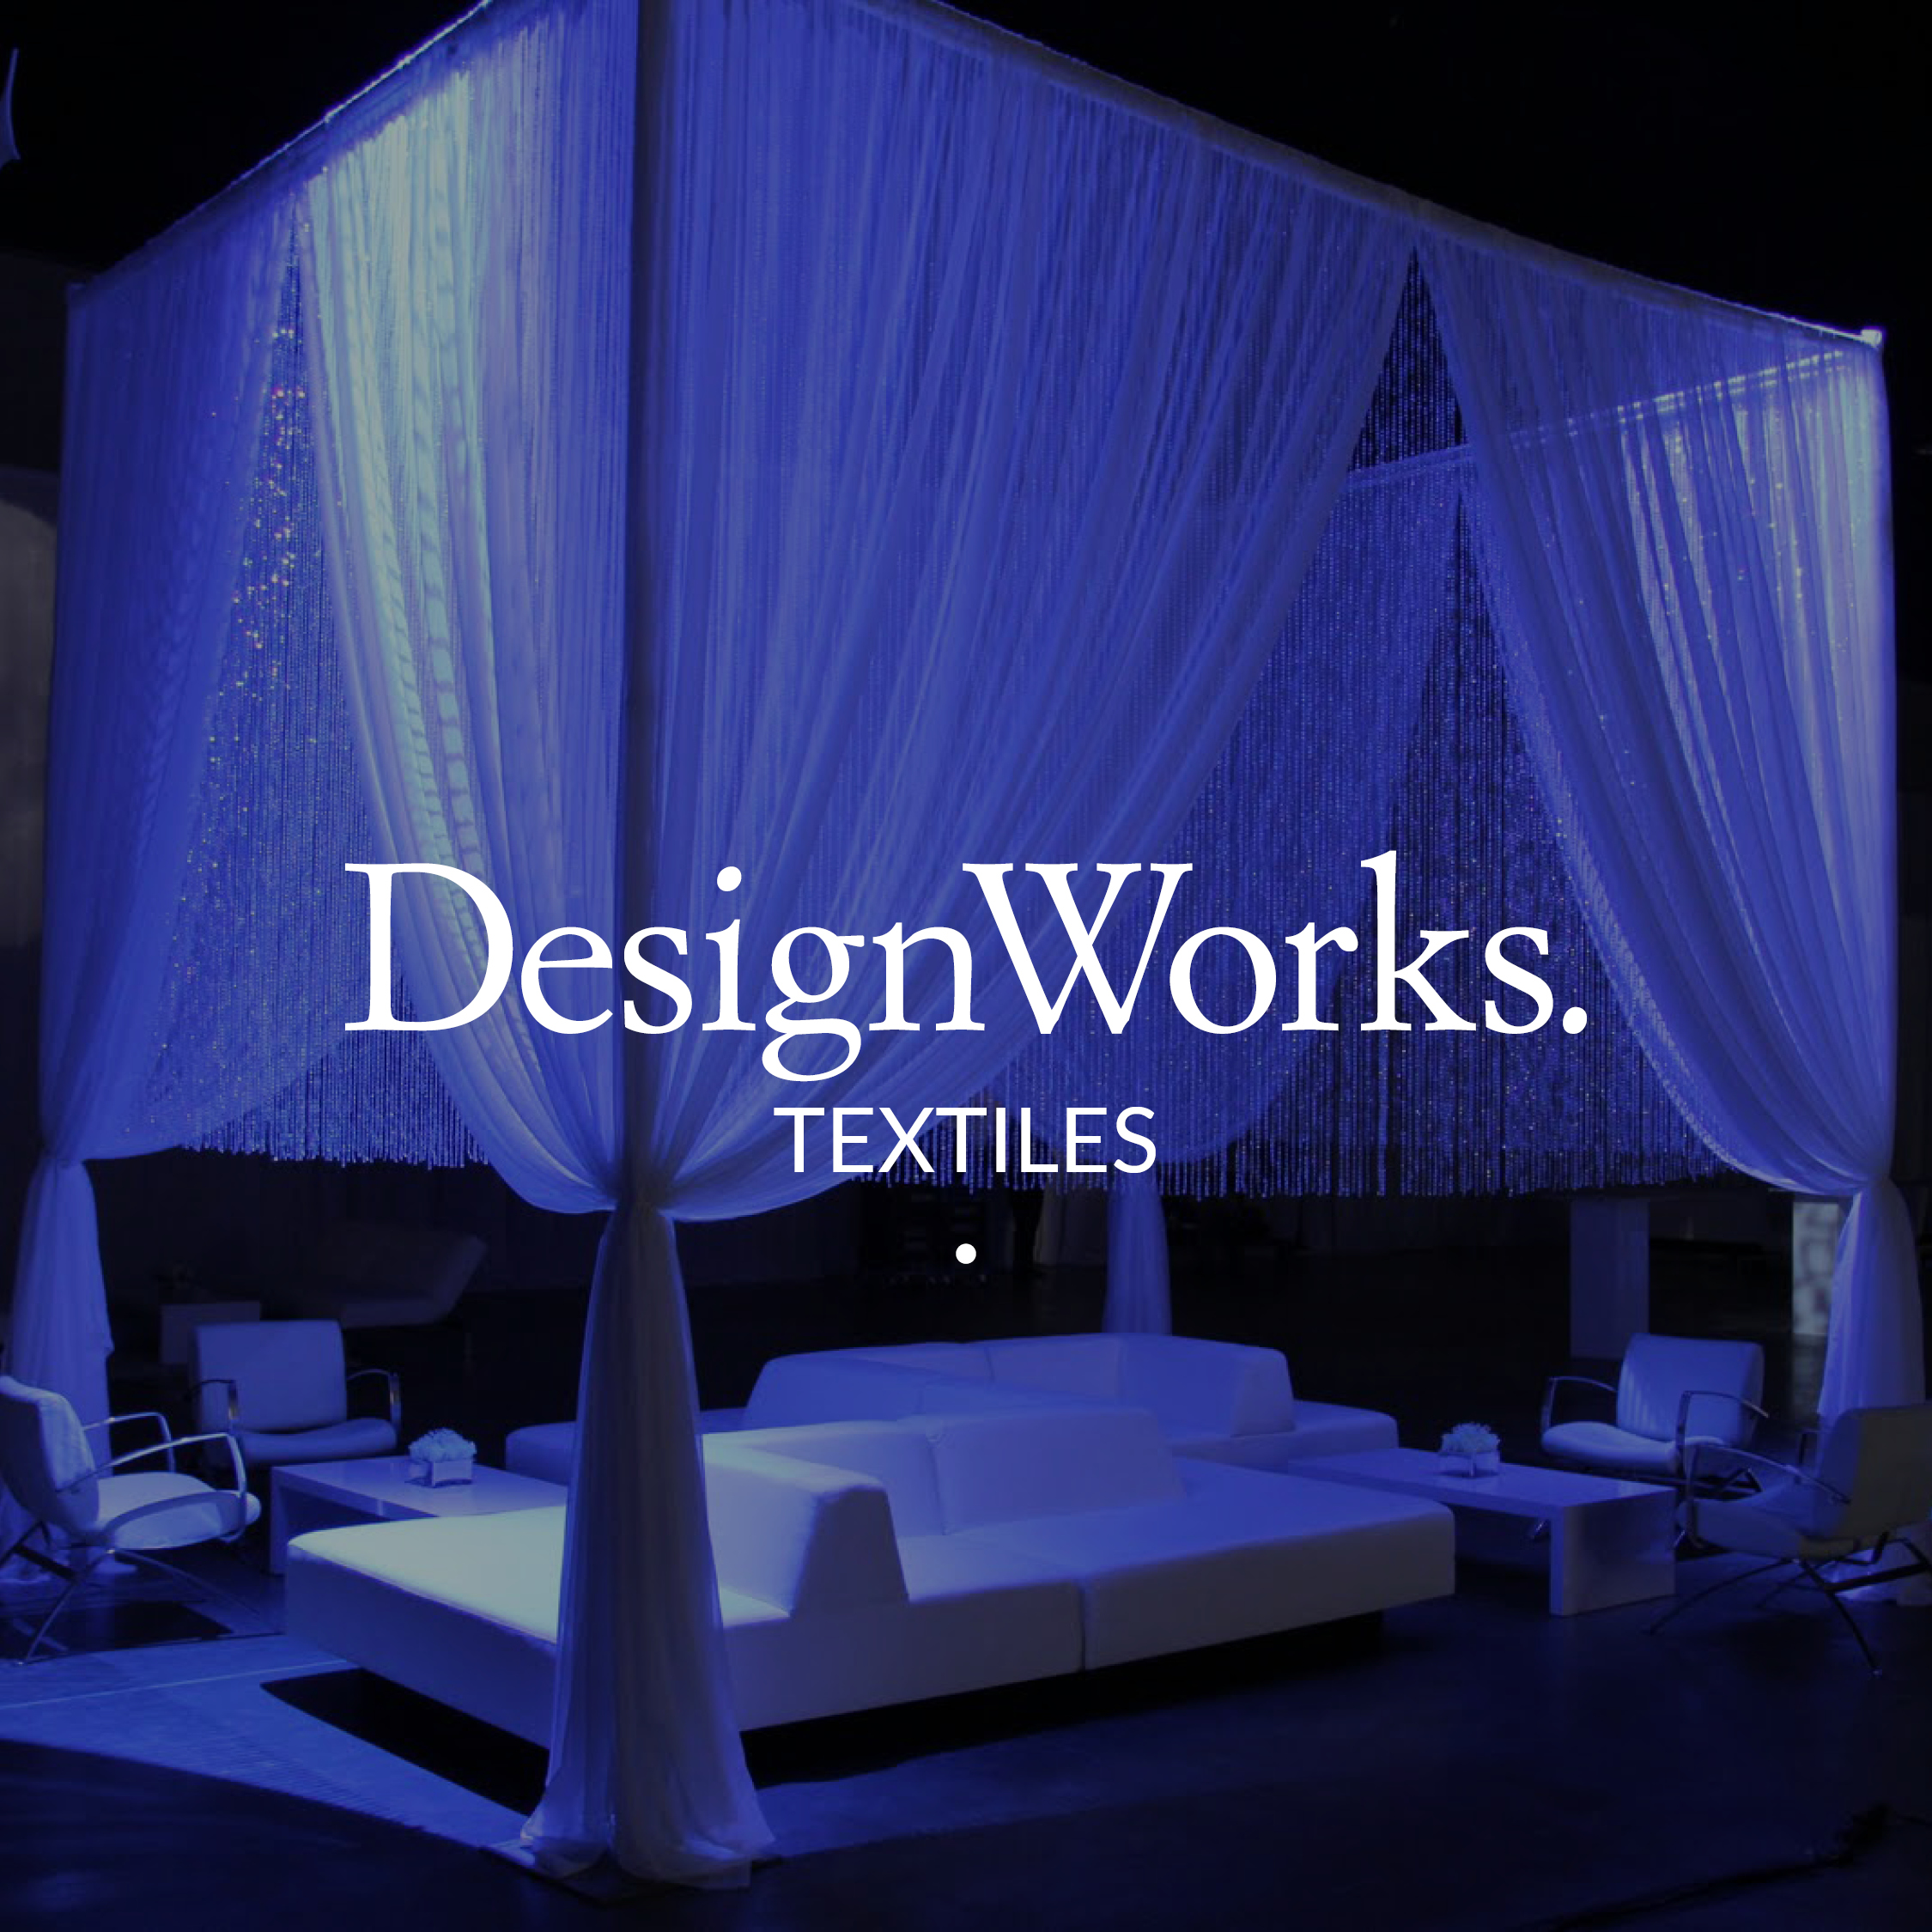 Design Works Service Textiles and Draping